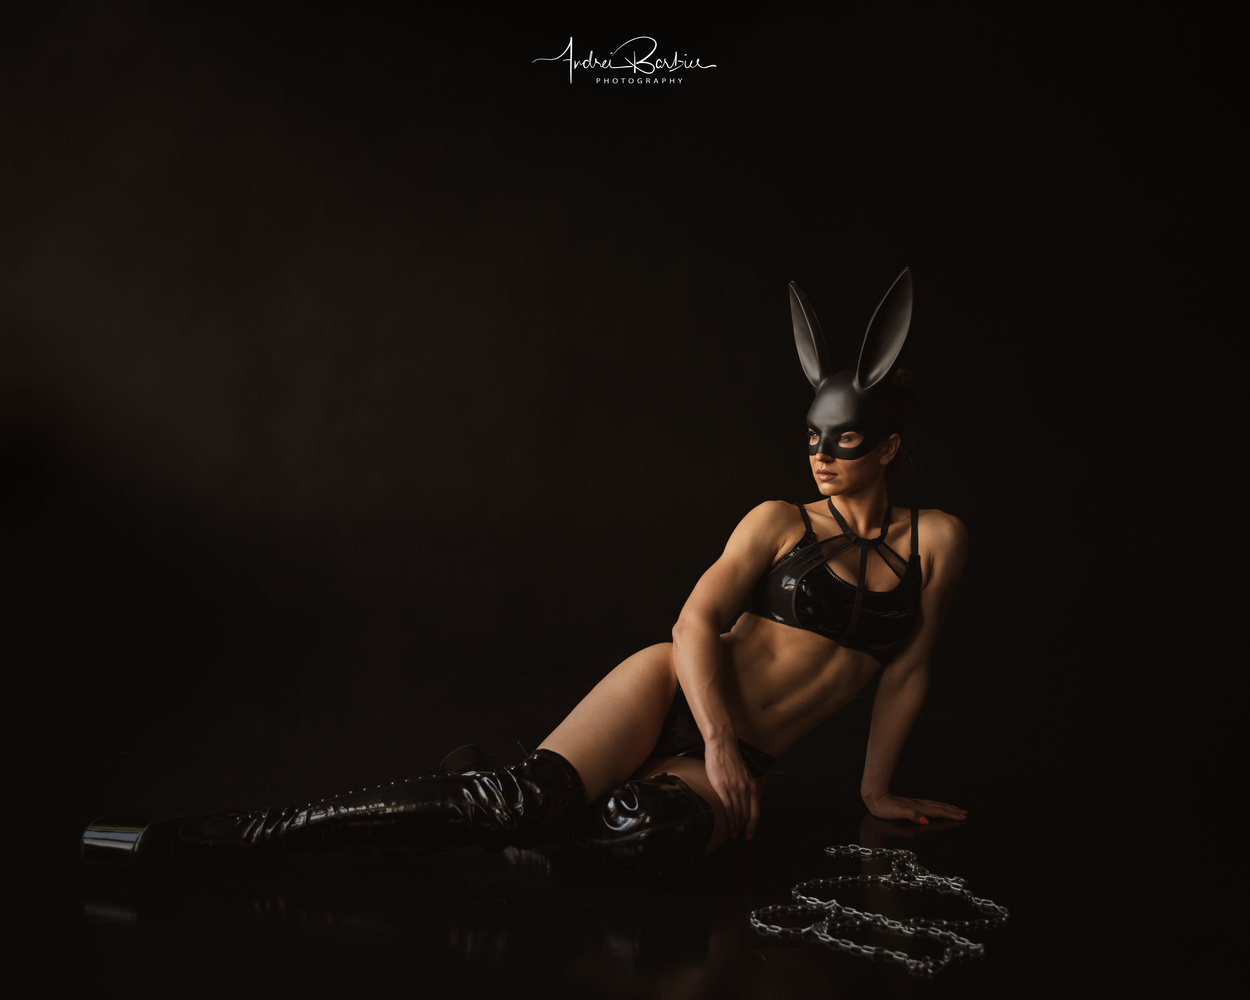 Bunny by Andrei Barbier